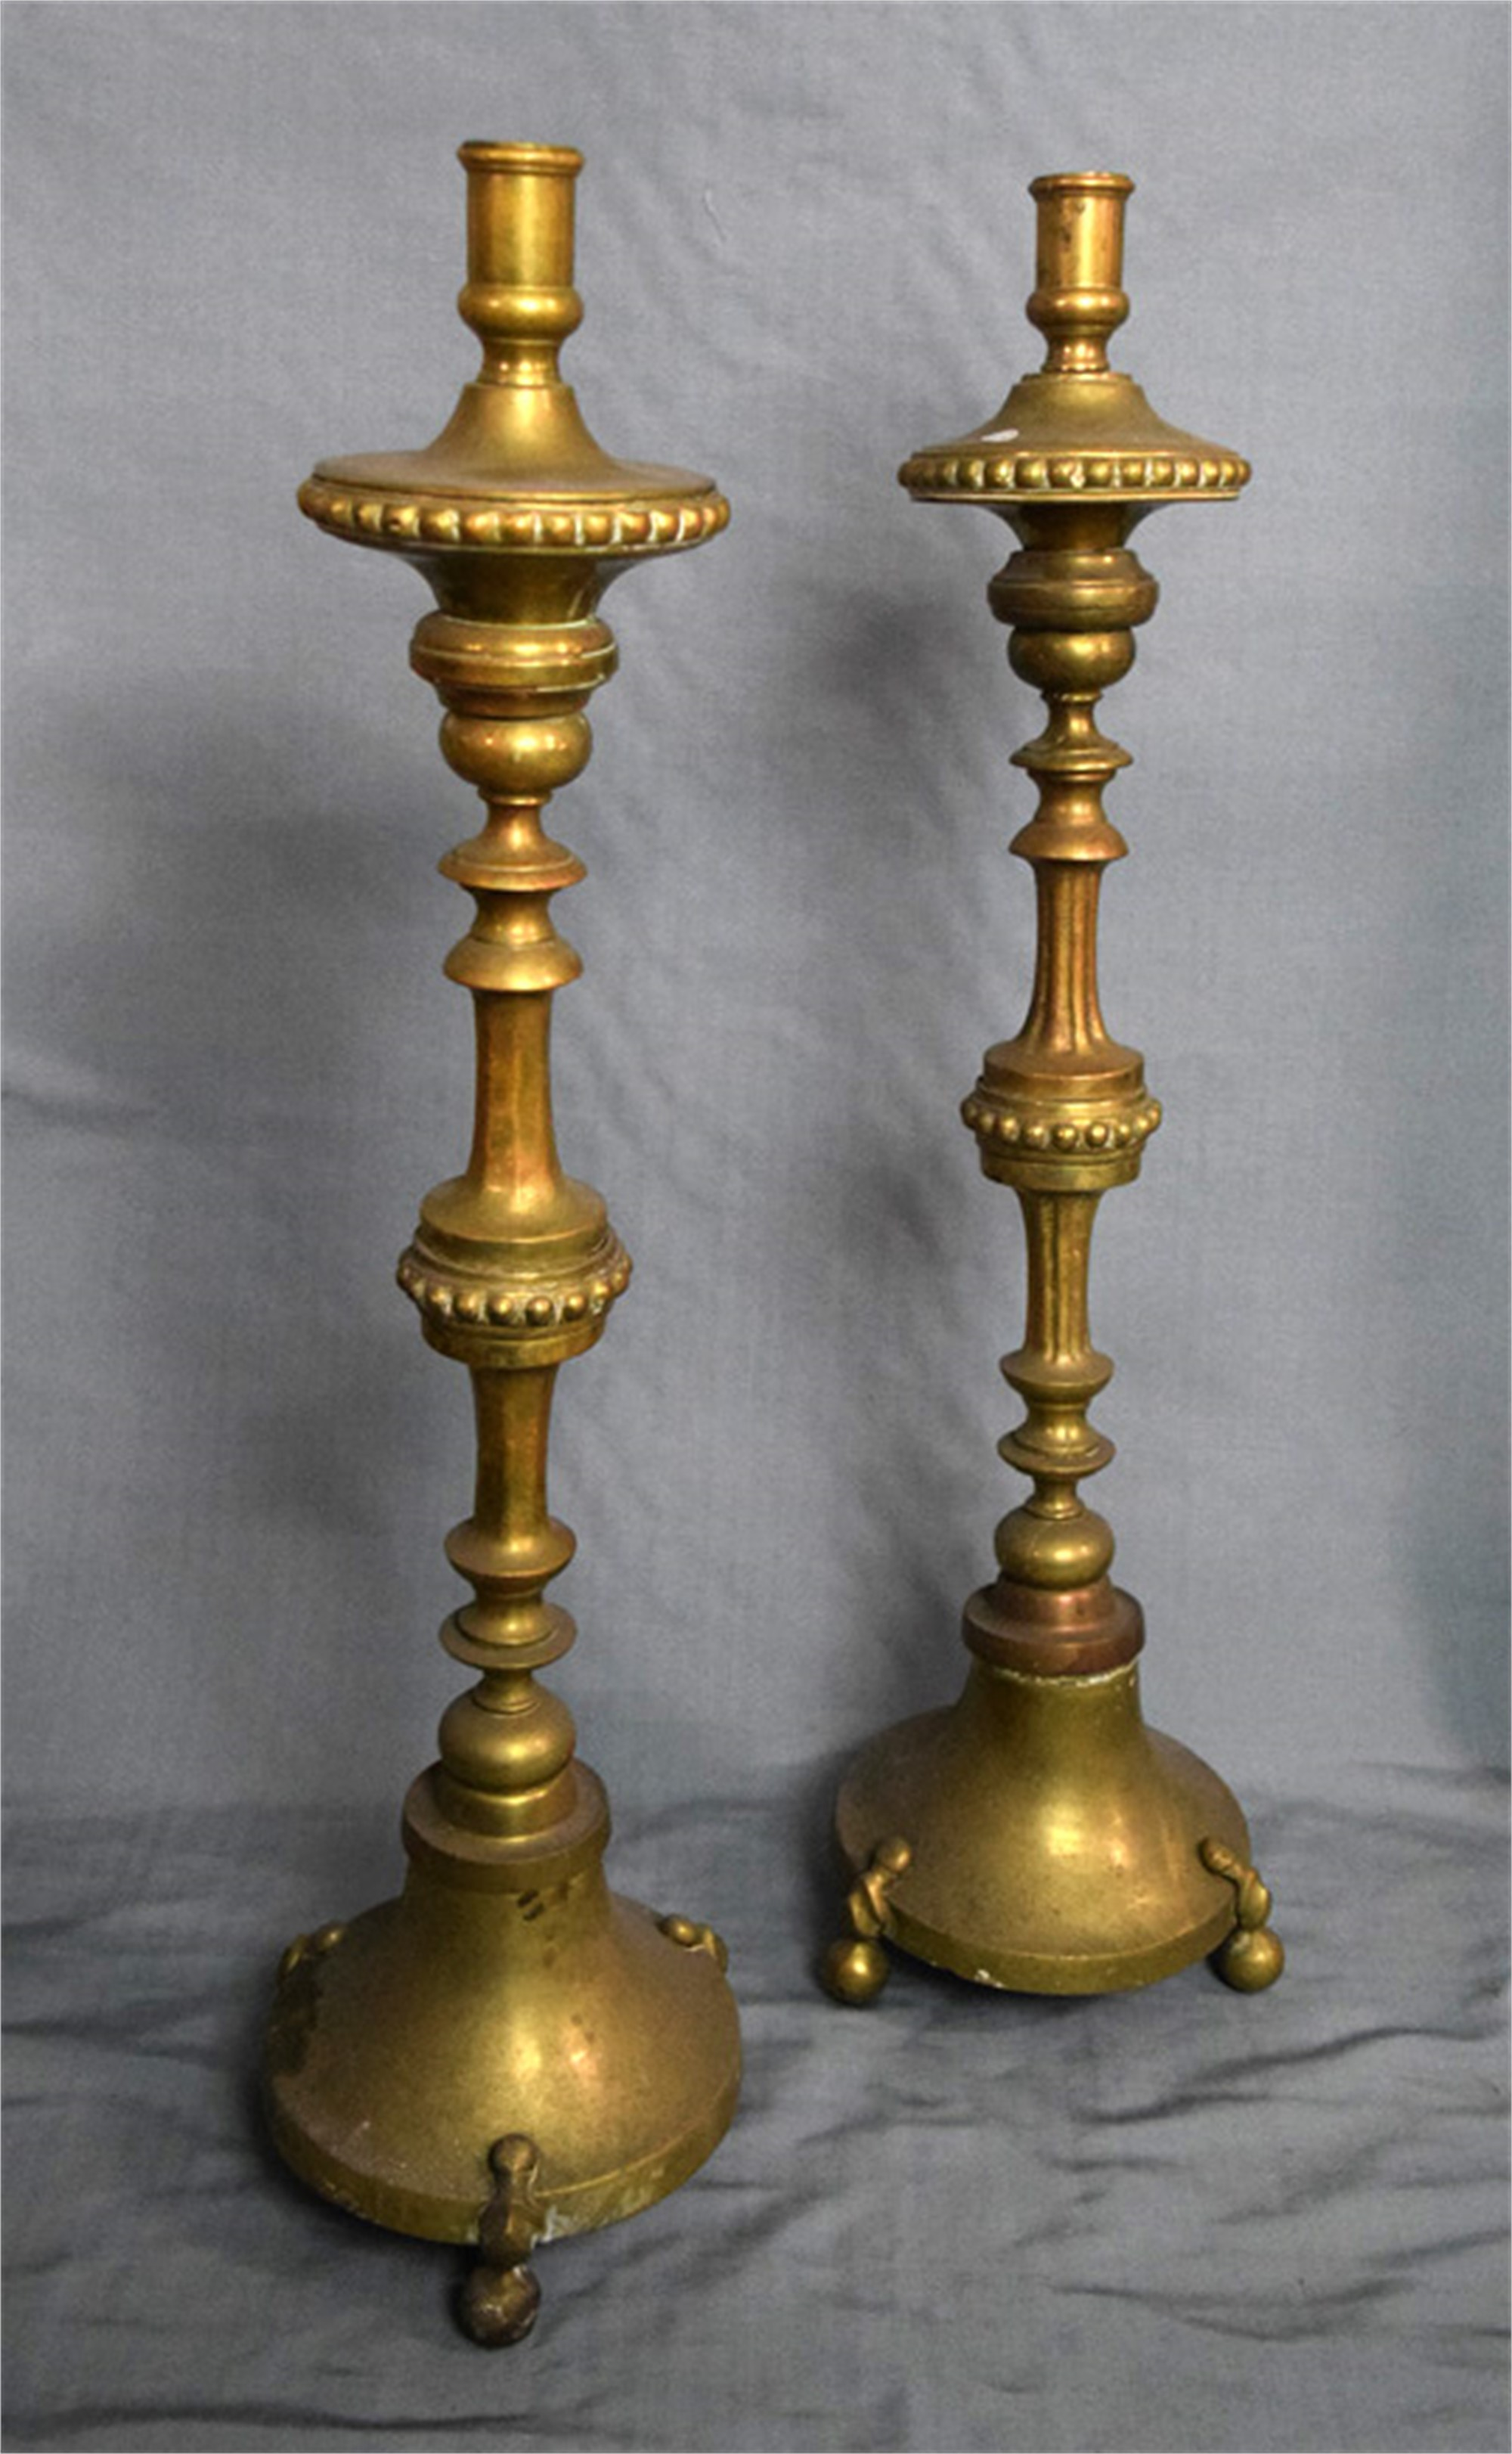 PAIR OF CONTINENTAL, BAROQUE STYLE BRASS ALTAR STICKS